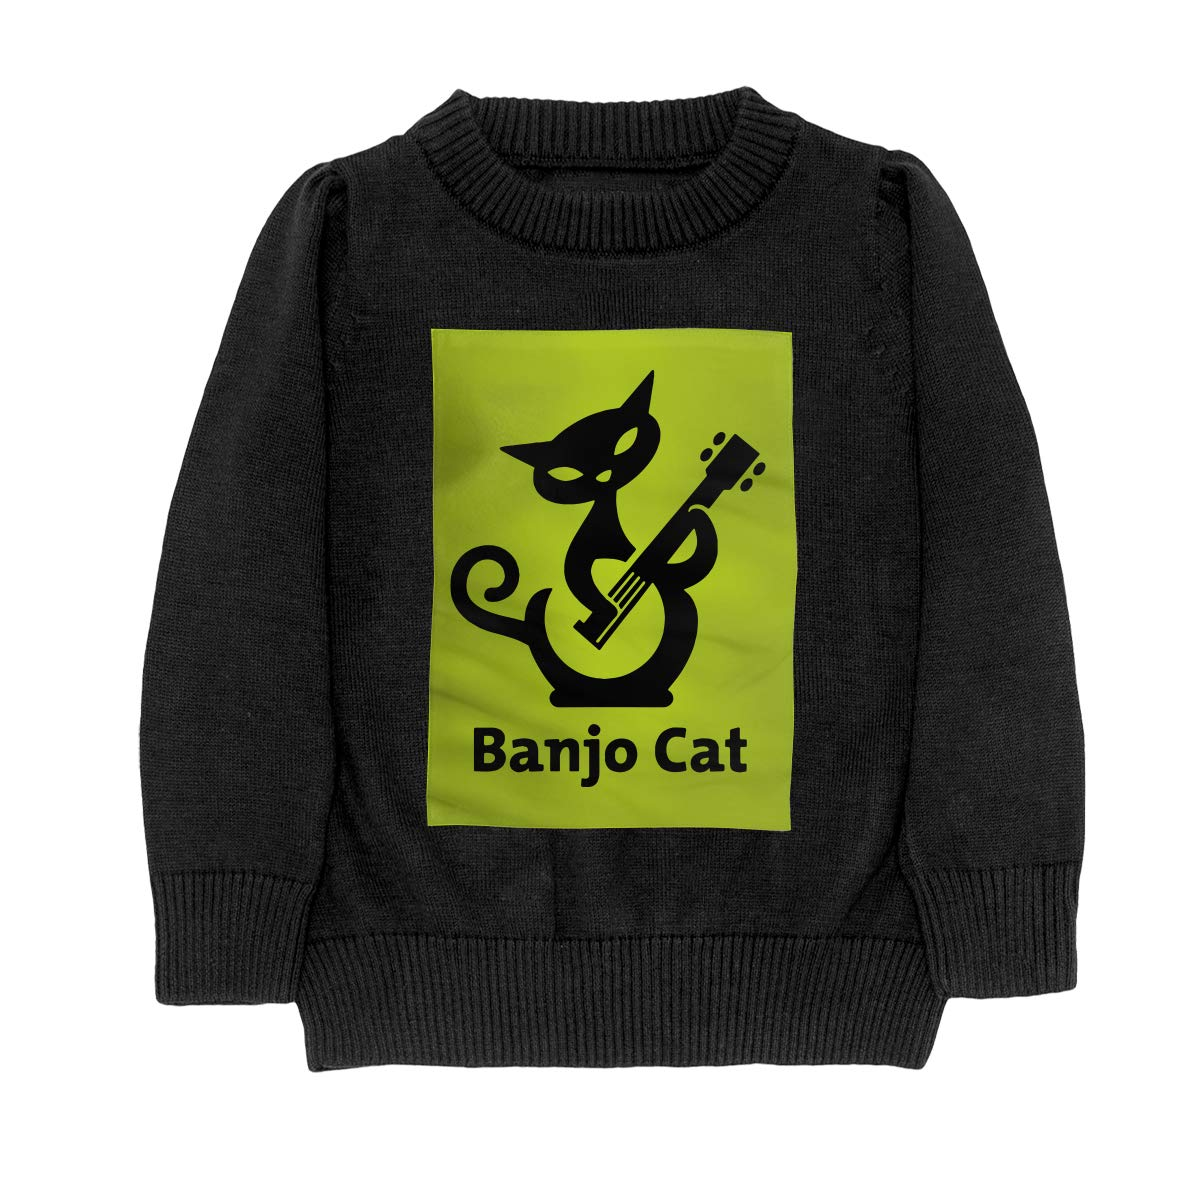 Cat Play Banjo Casual Adolescent Boys Girls Unisex Sweater Keep Warm